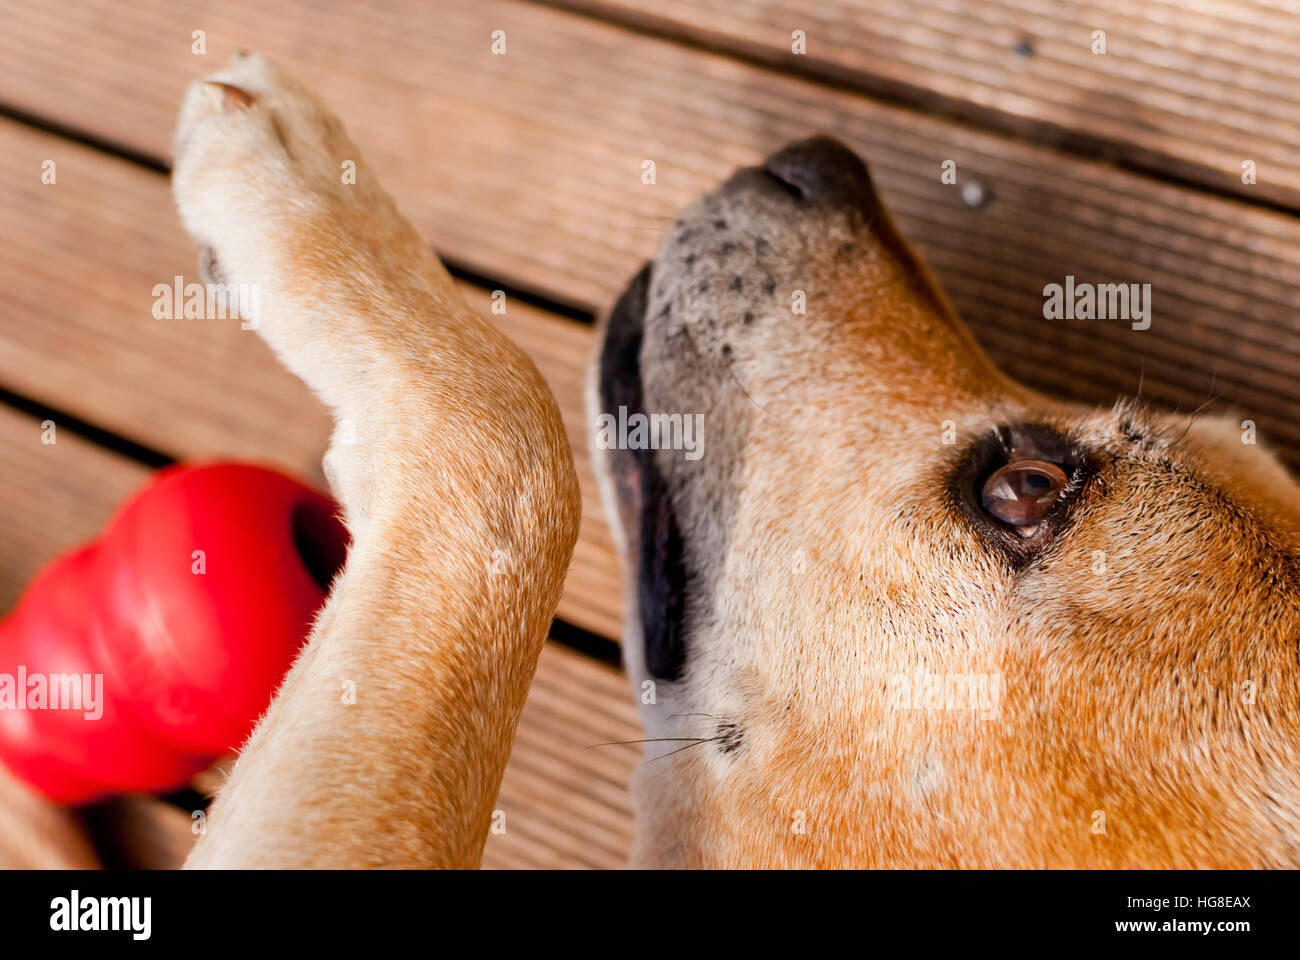 Cute dog playing - Stock Image